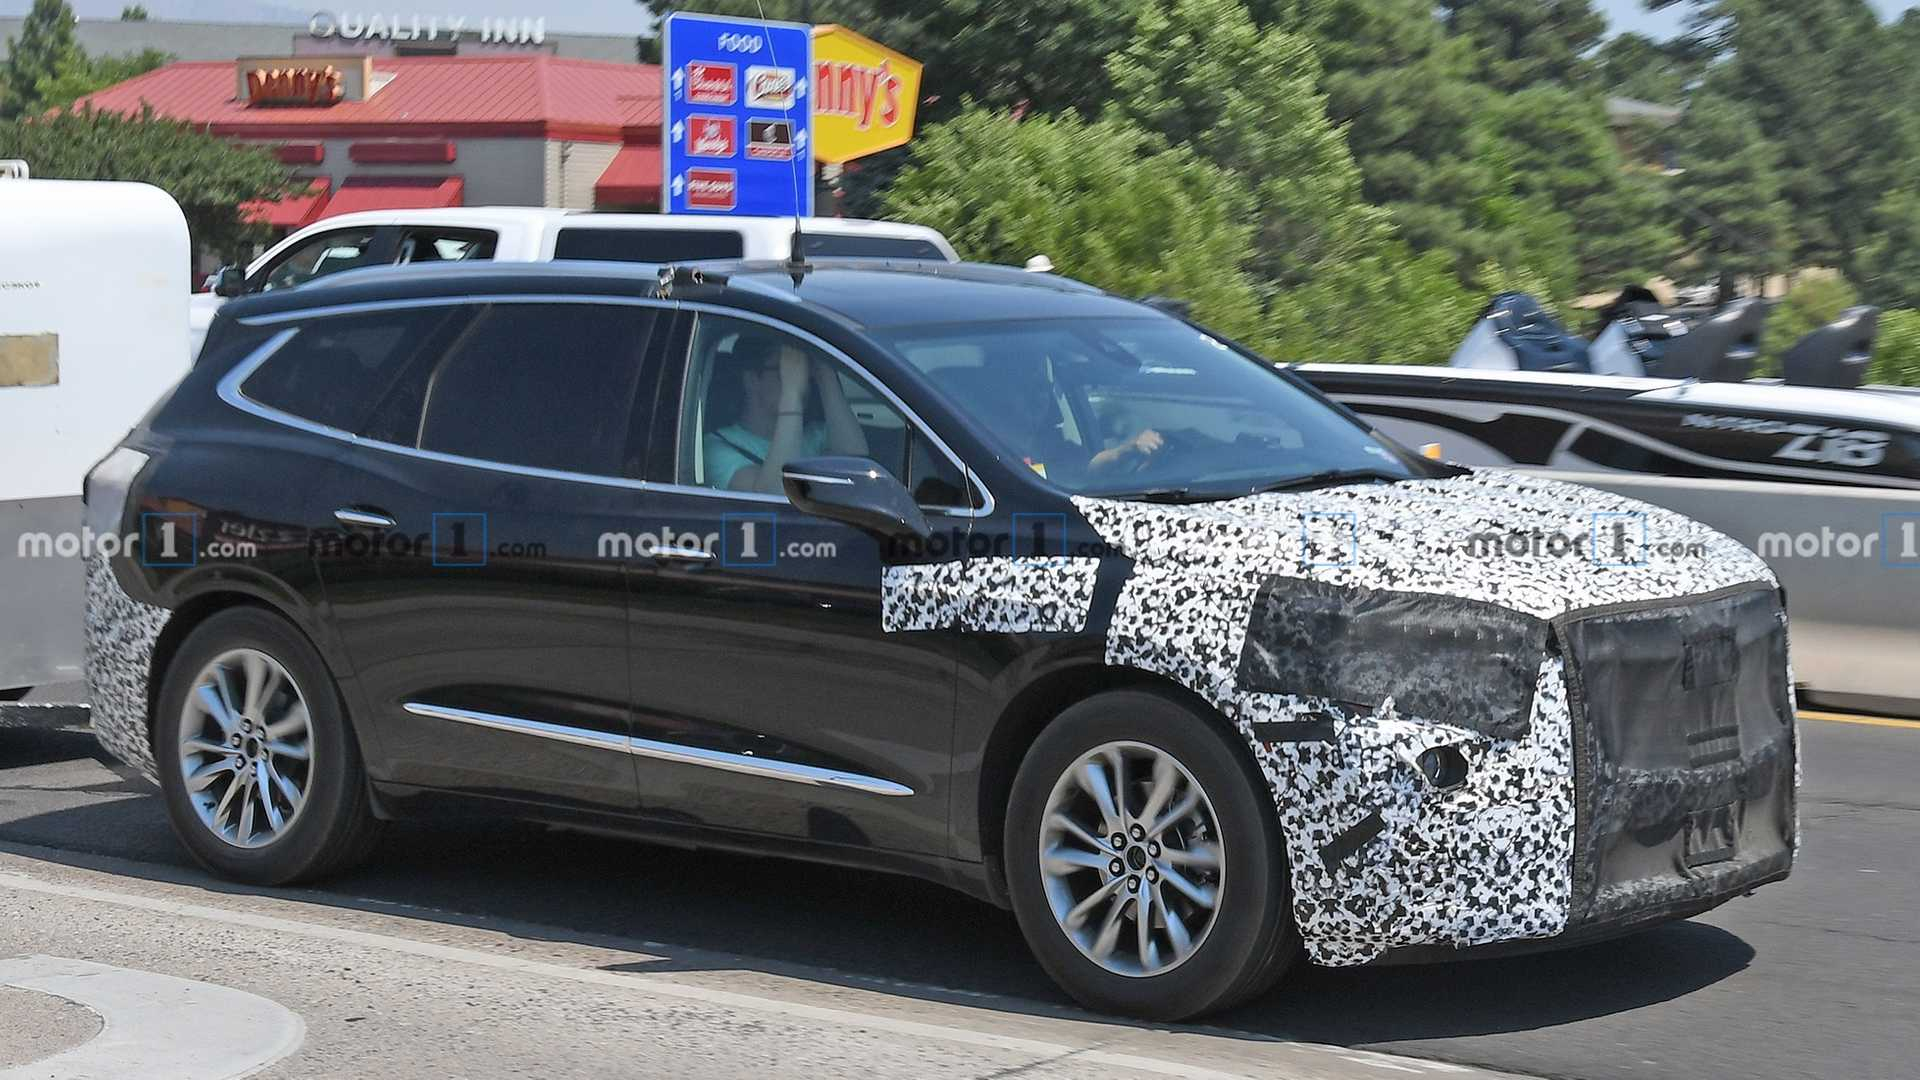 2021 Buick Enclave Spied For The First Time New 2022 Buick Enclave Awd, Build, Lease